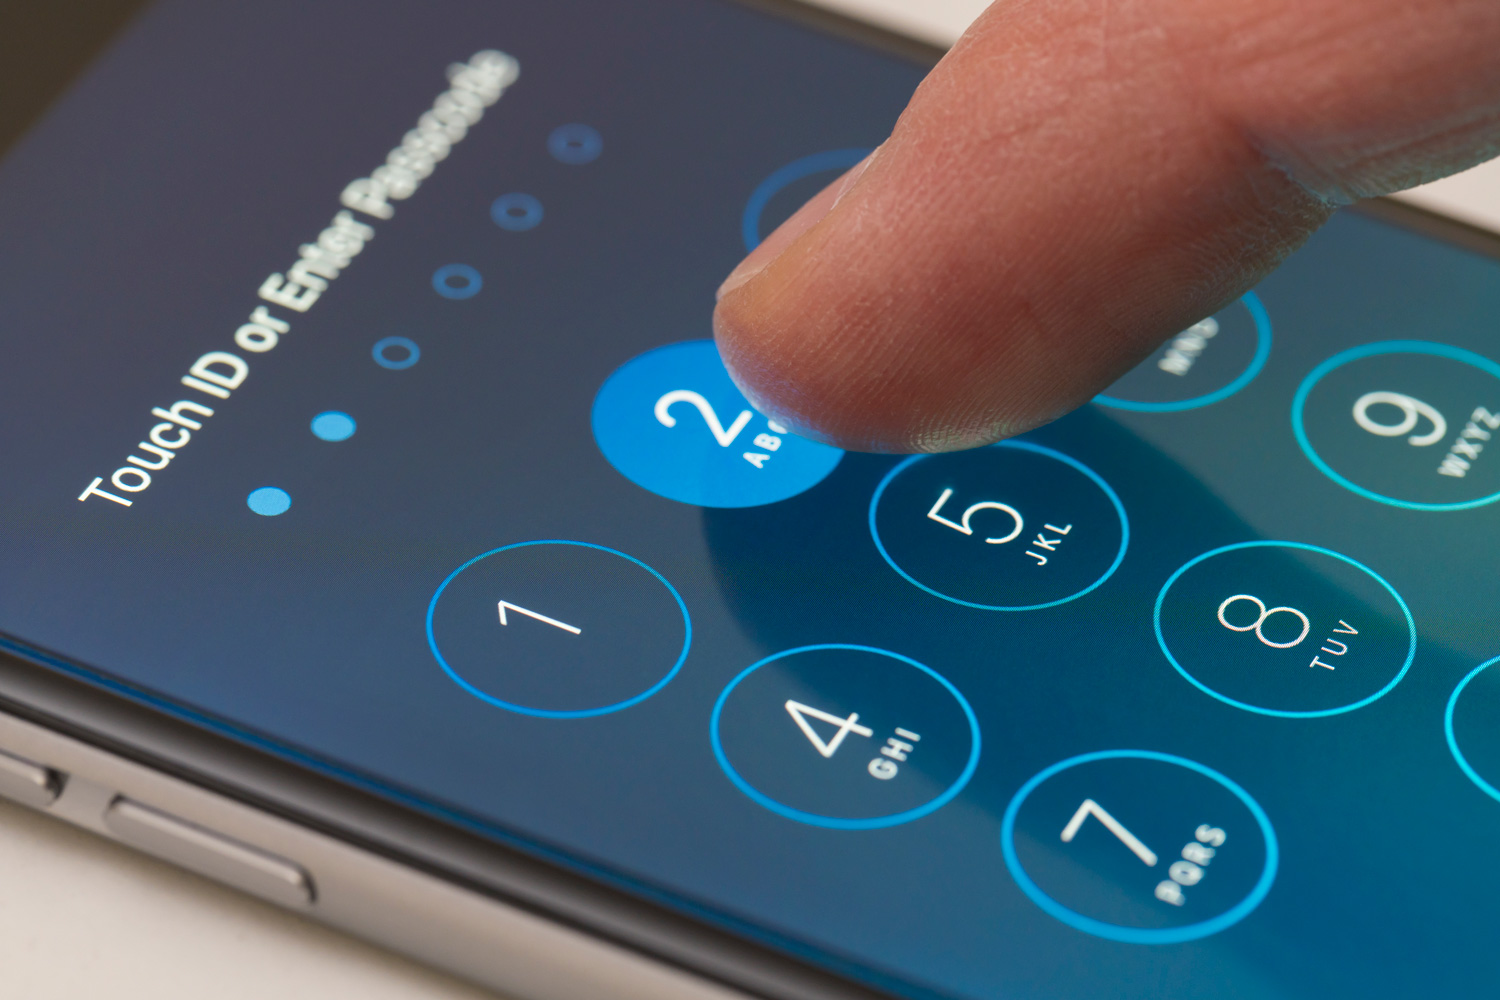 Mobile Password Keepers: Are They Safe to Store Sensitive Passwords